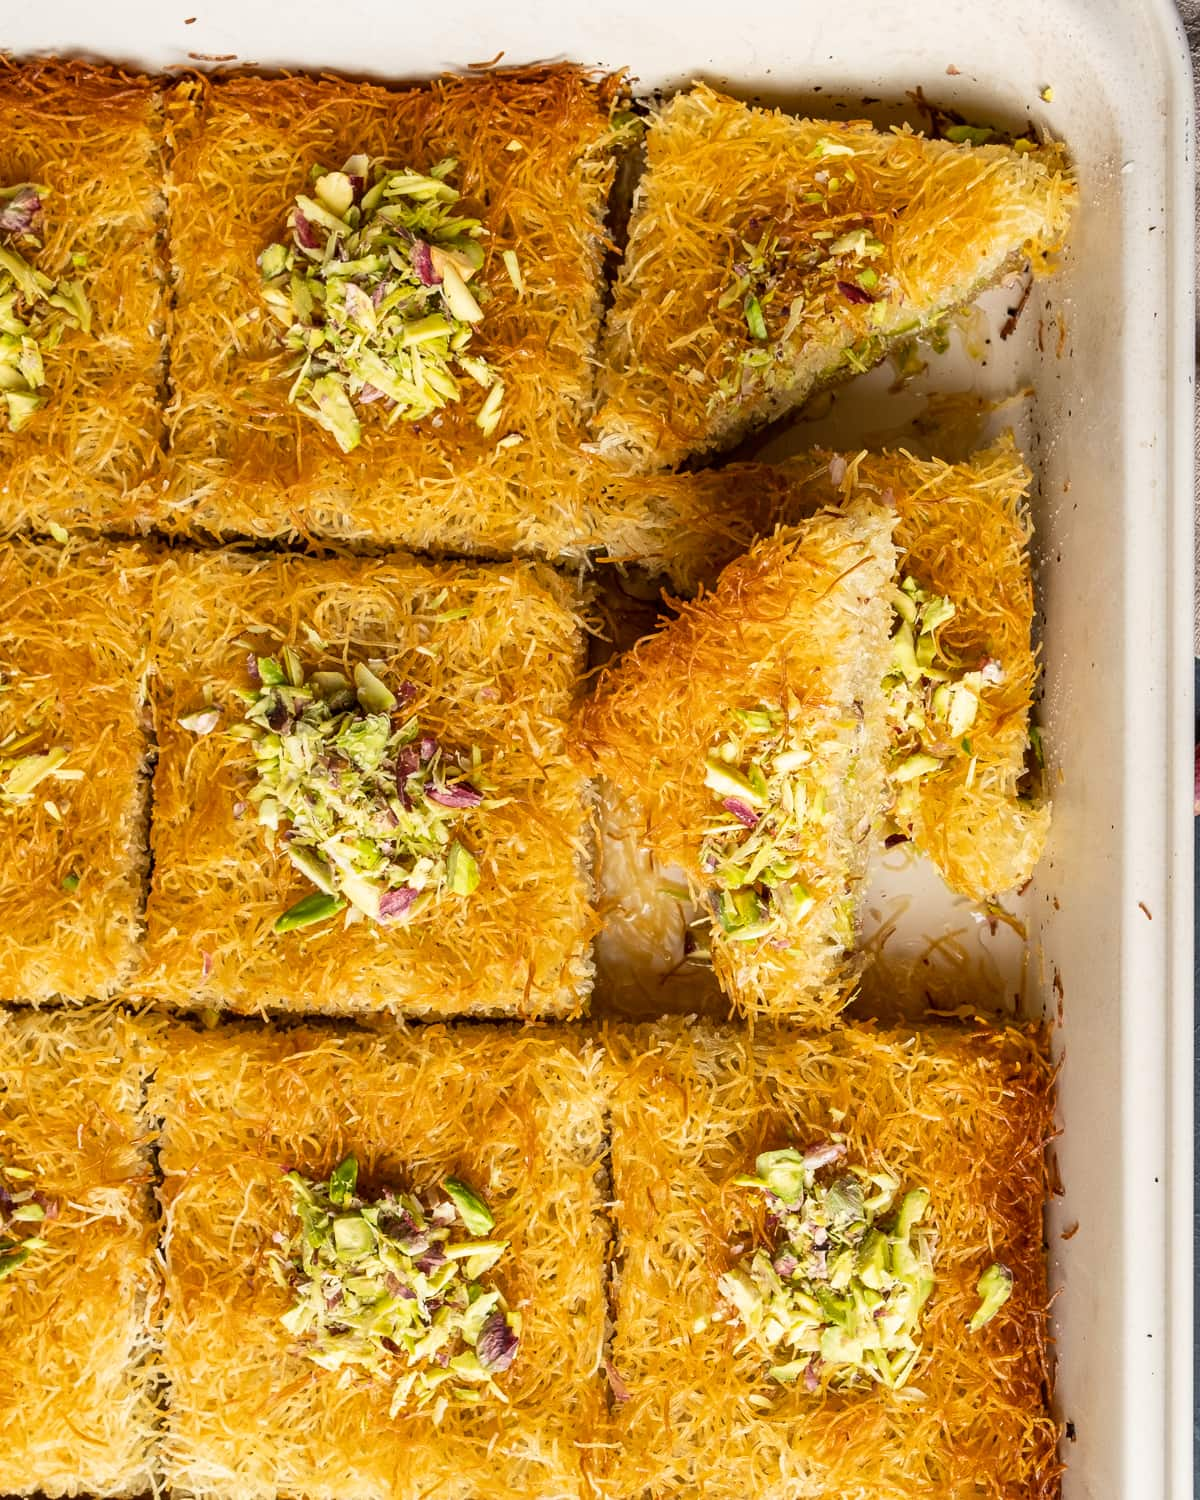 Baked golden top kadaif slices topped with crumbled pistachios in a pan.